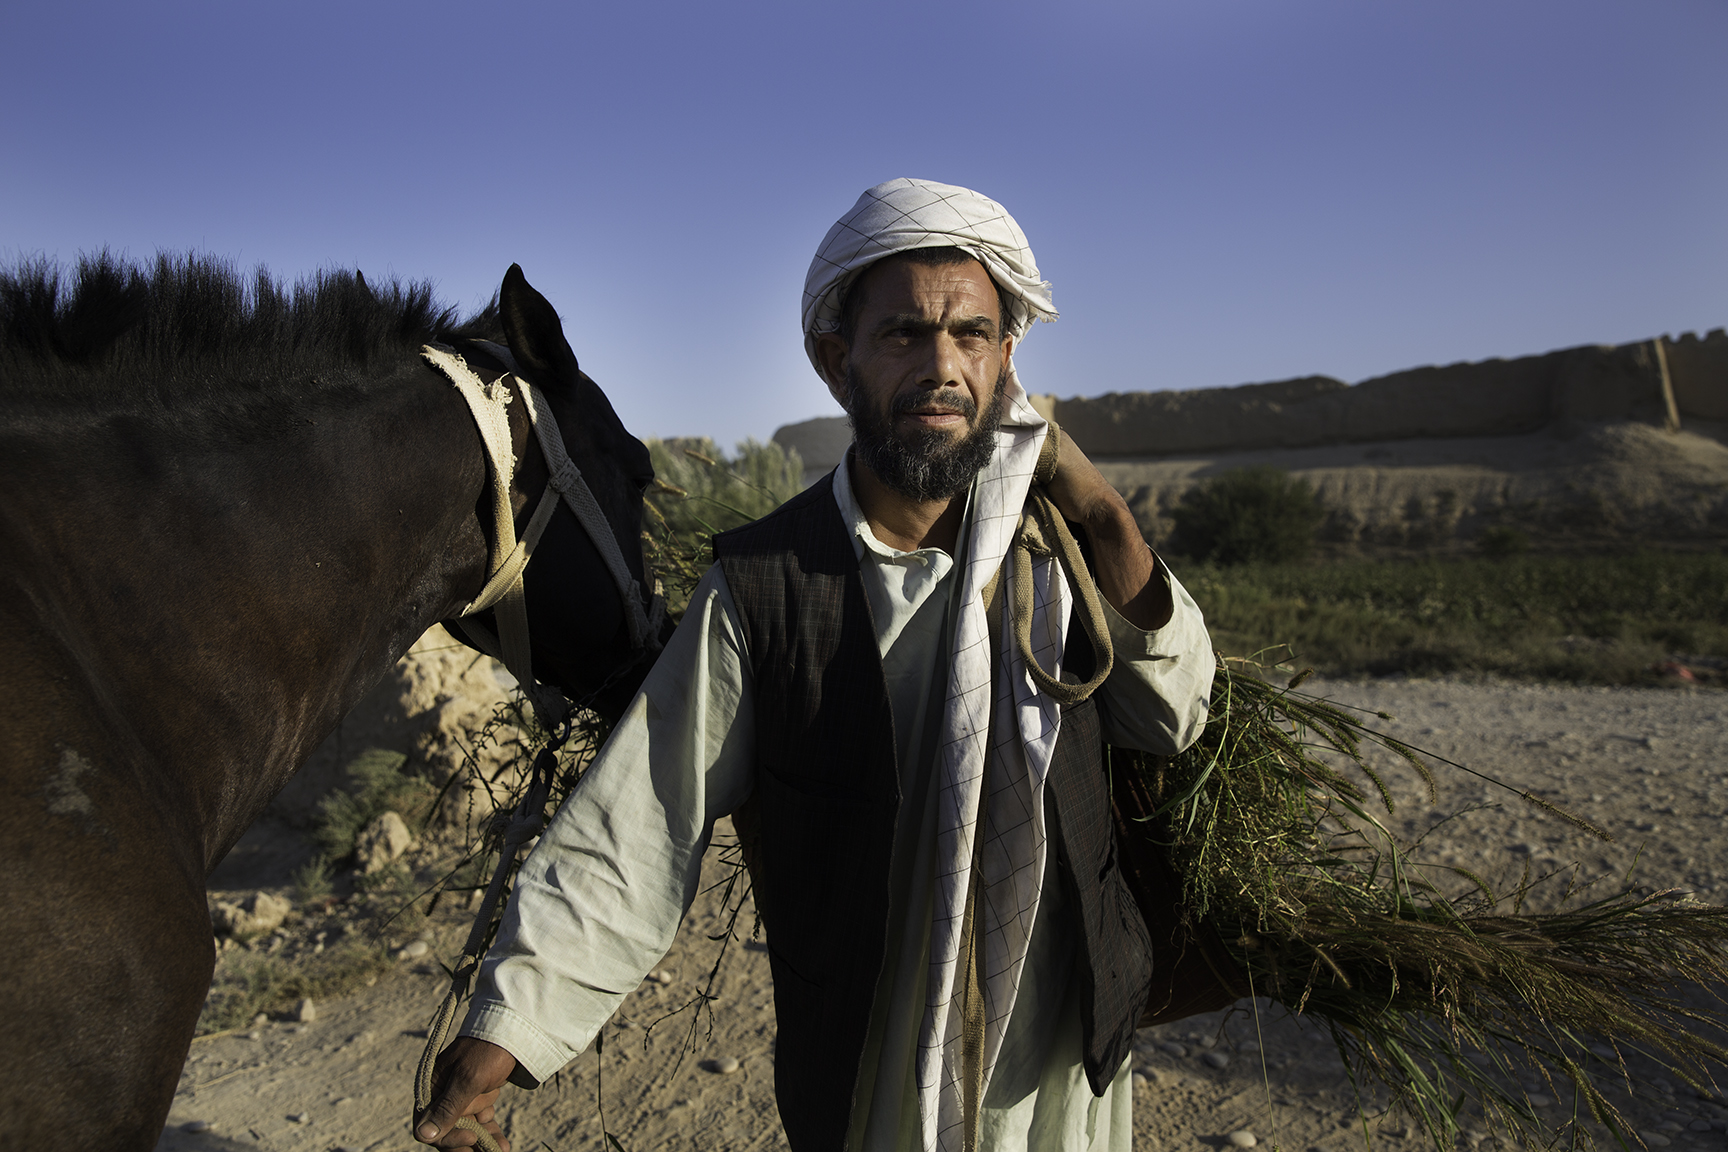 A farmer carries fresh forage for his horse near the Old Balkh city wall, a daily chore that has remained the same since Alexander the Great set up camp here in 330 BCE and left the lasting imprint of Greek civilization in central Asia.